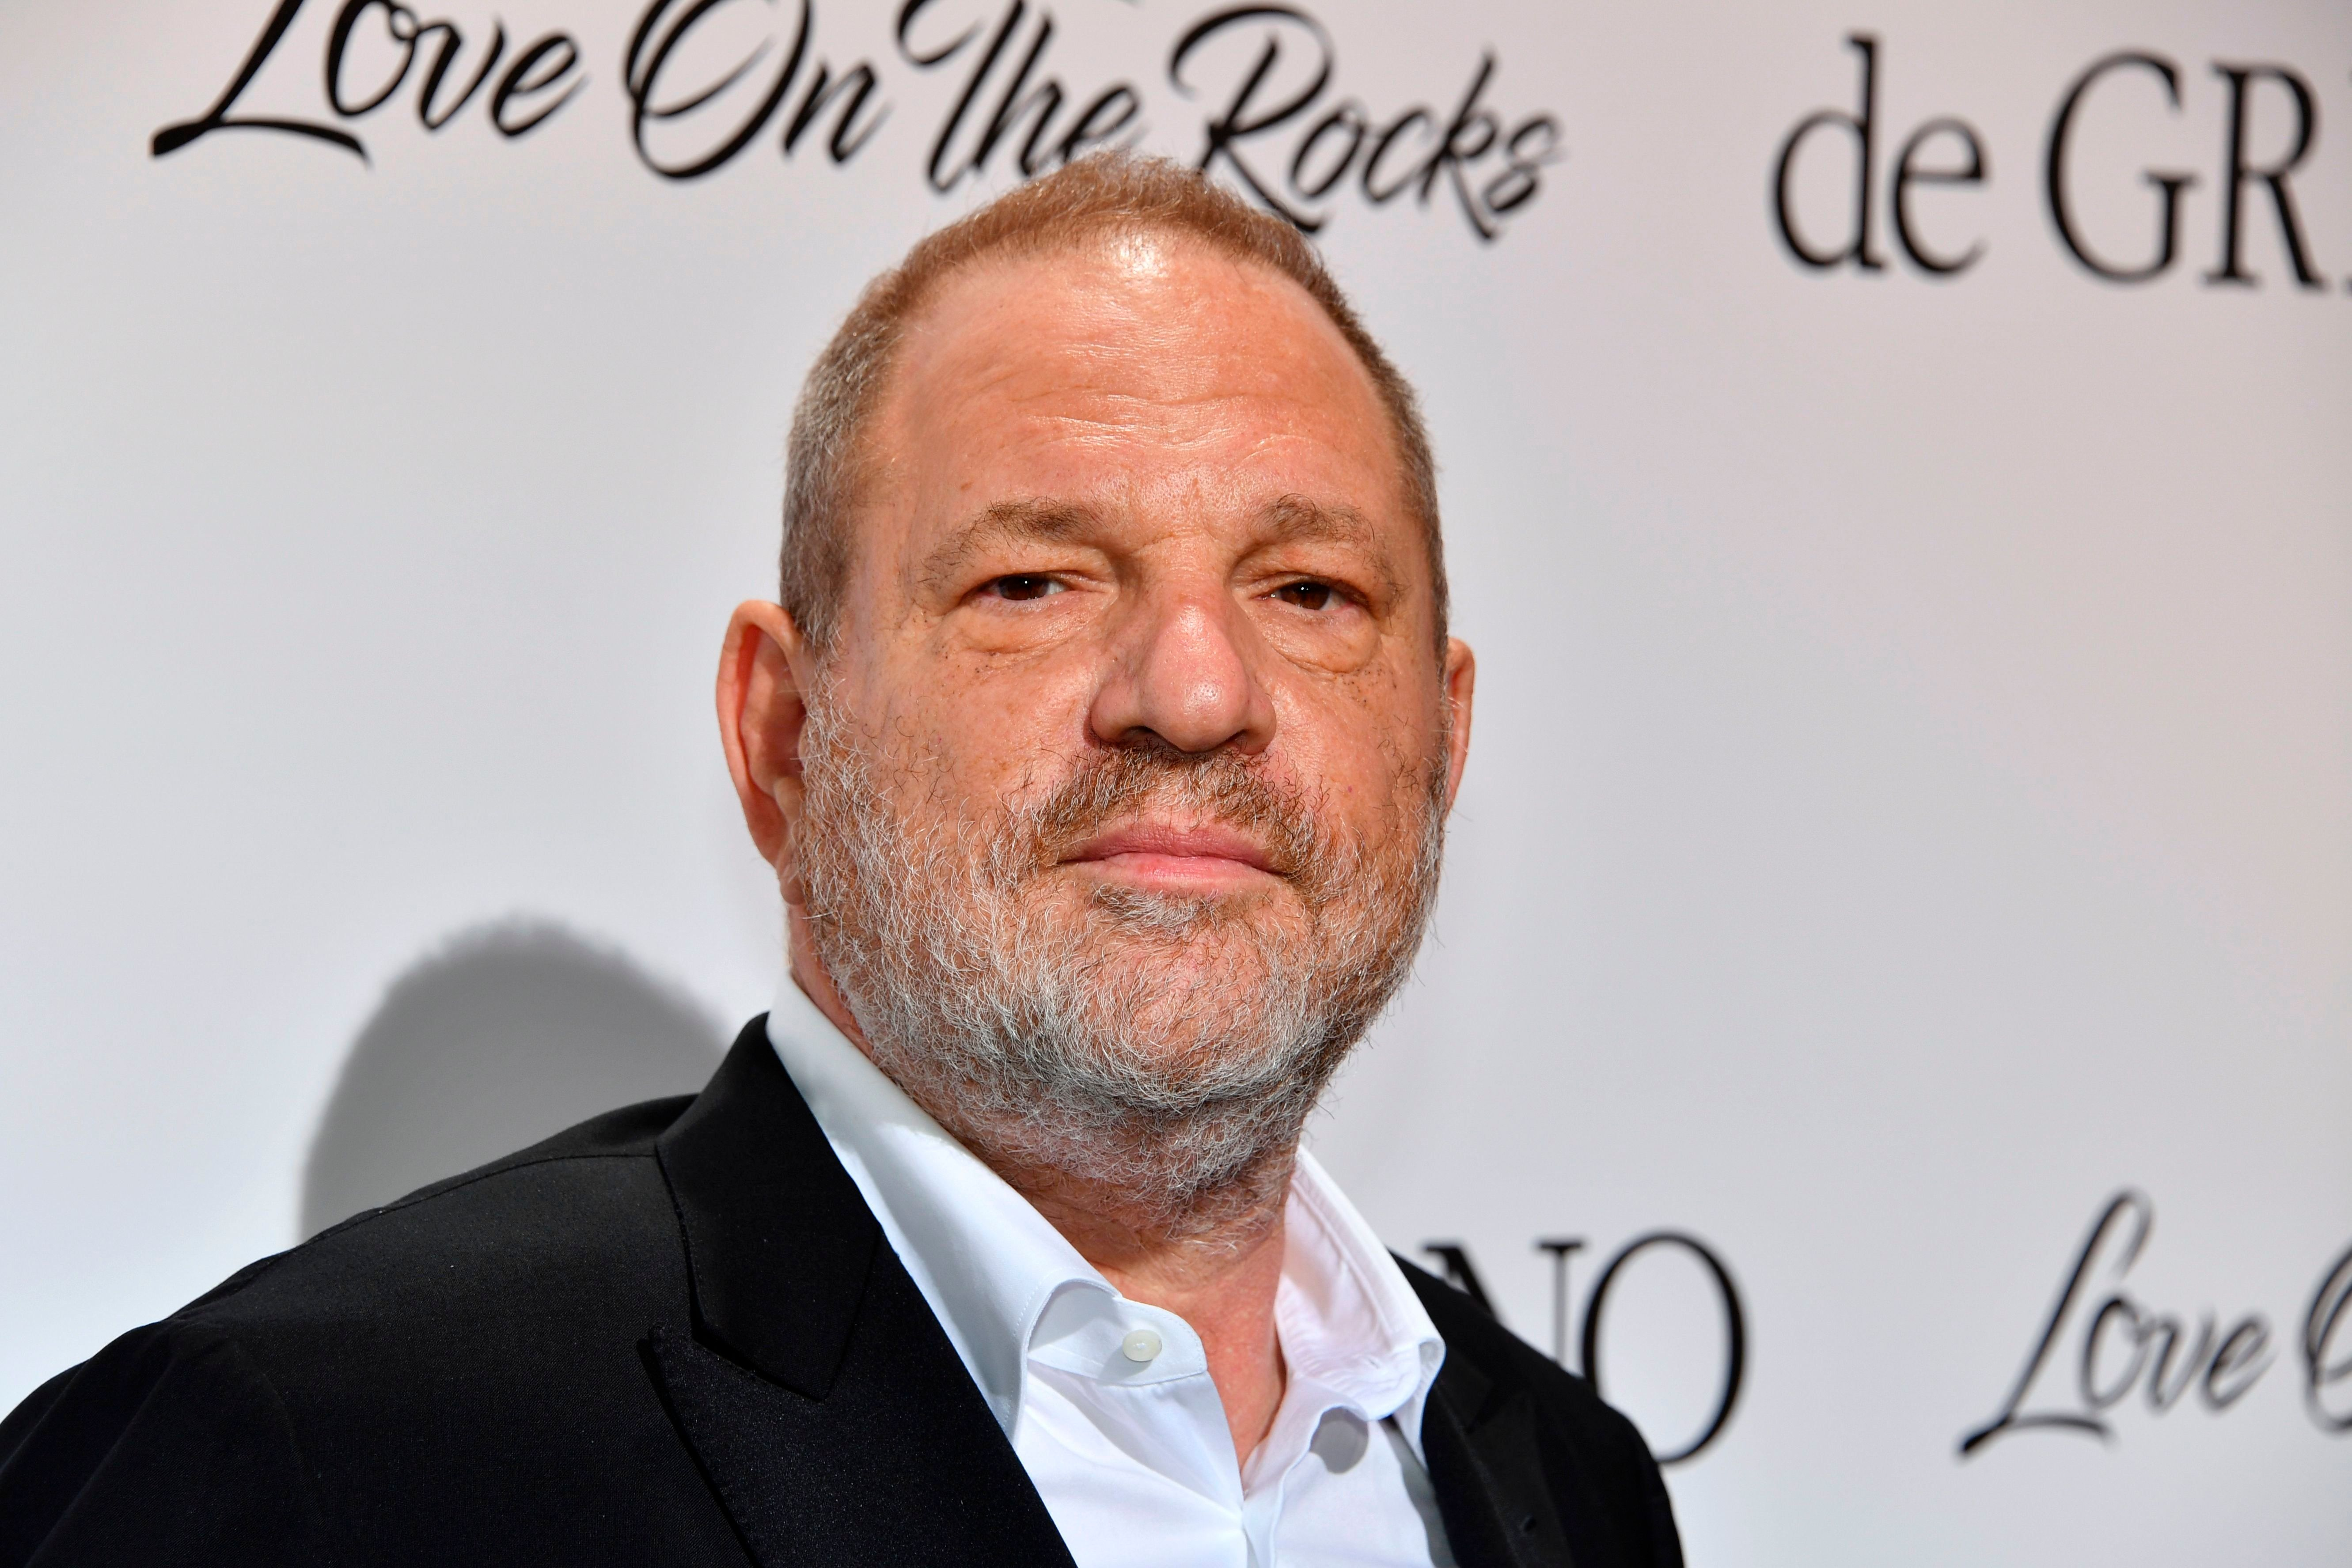 Weinstein's Name To Be Erased From Show Credits As Company Seeks To Change